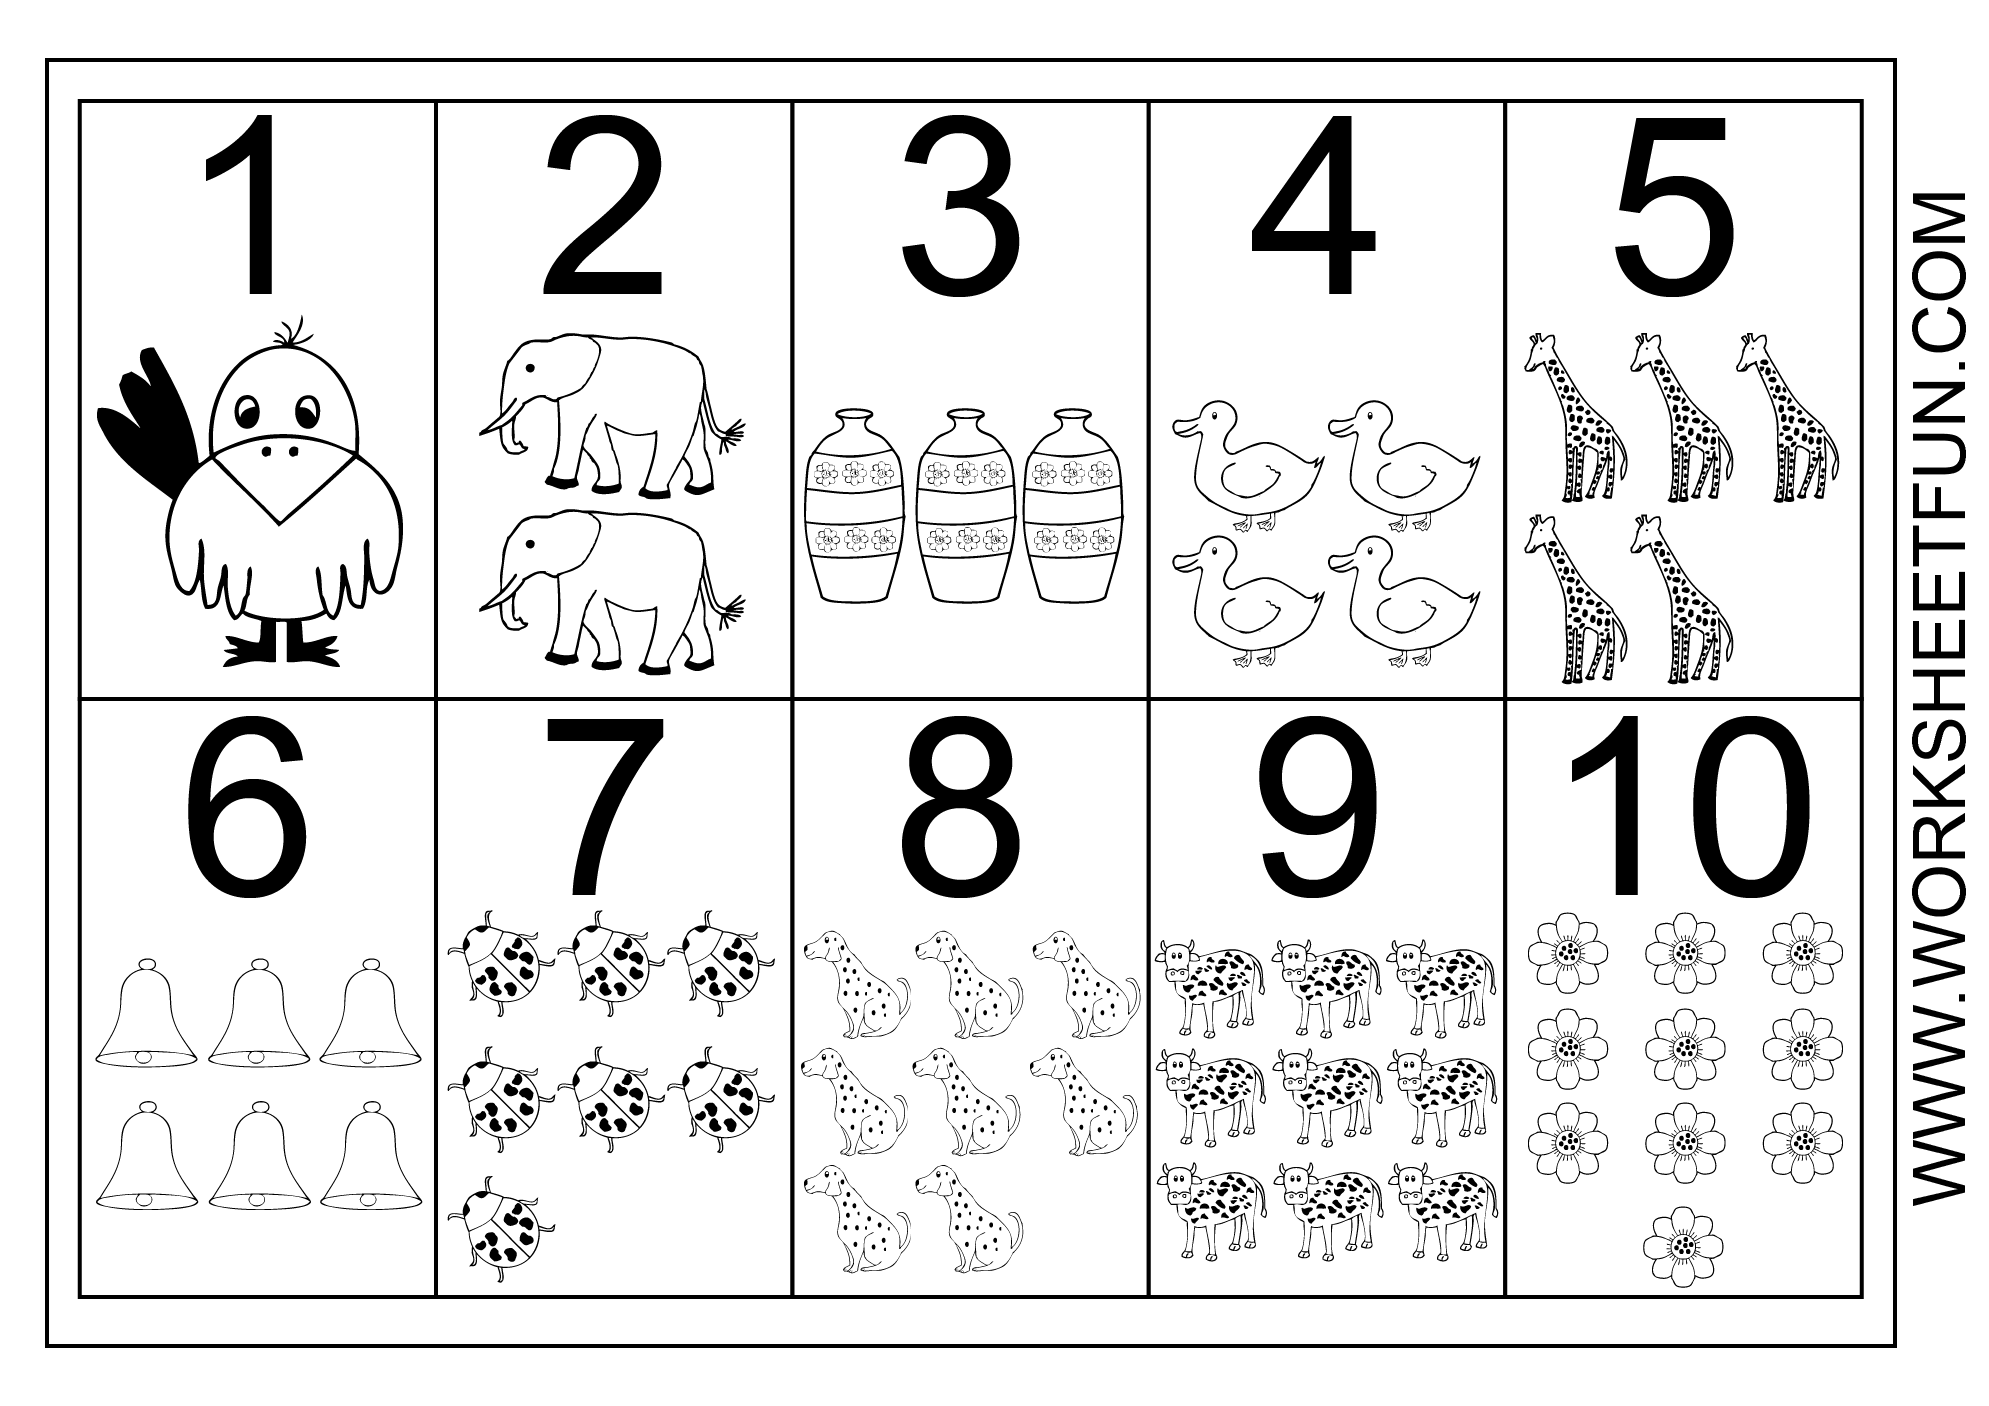 7 Images of 1-10 Printable Worksheets